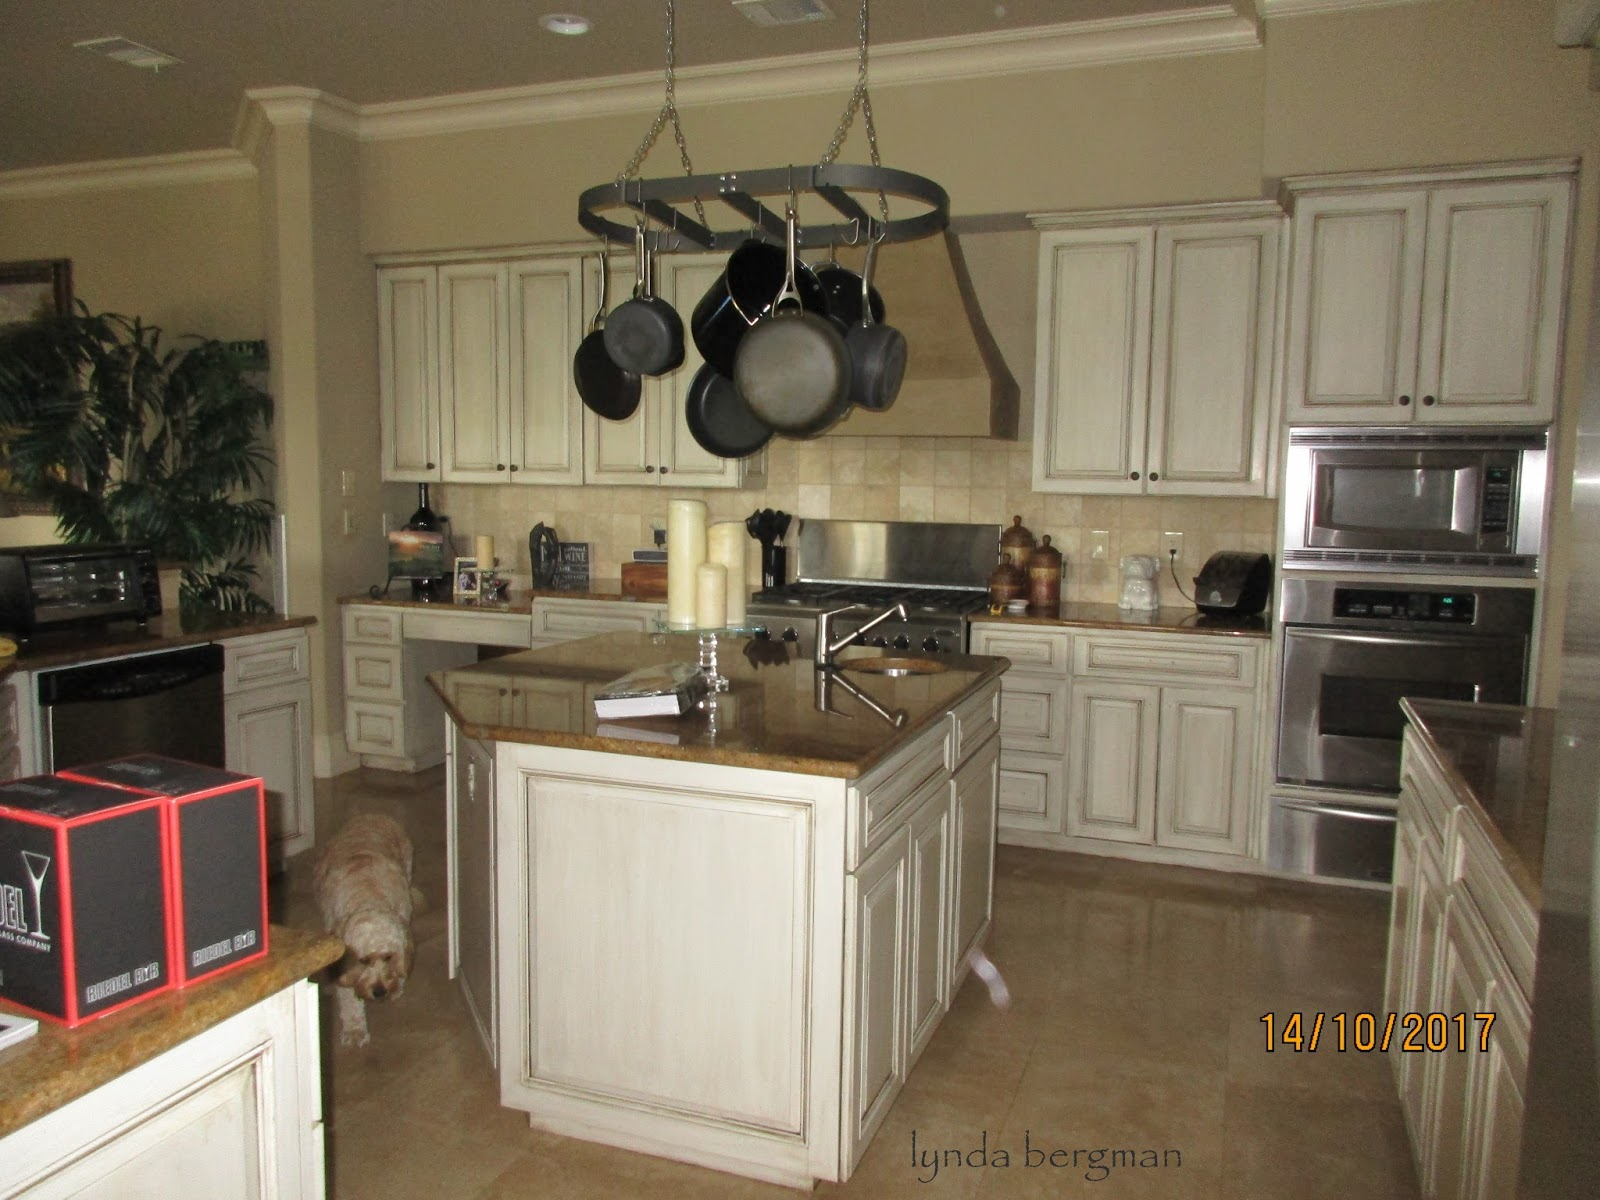 Lynda Bergman Decorative Artisan Painting Darkly Stained Kitchen Cabinets To An Off White Glazed Finish For Tracy Nick